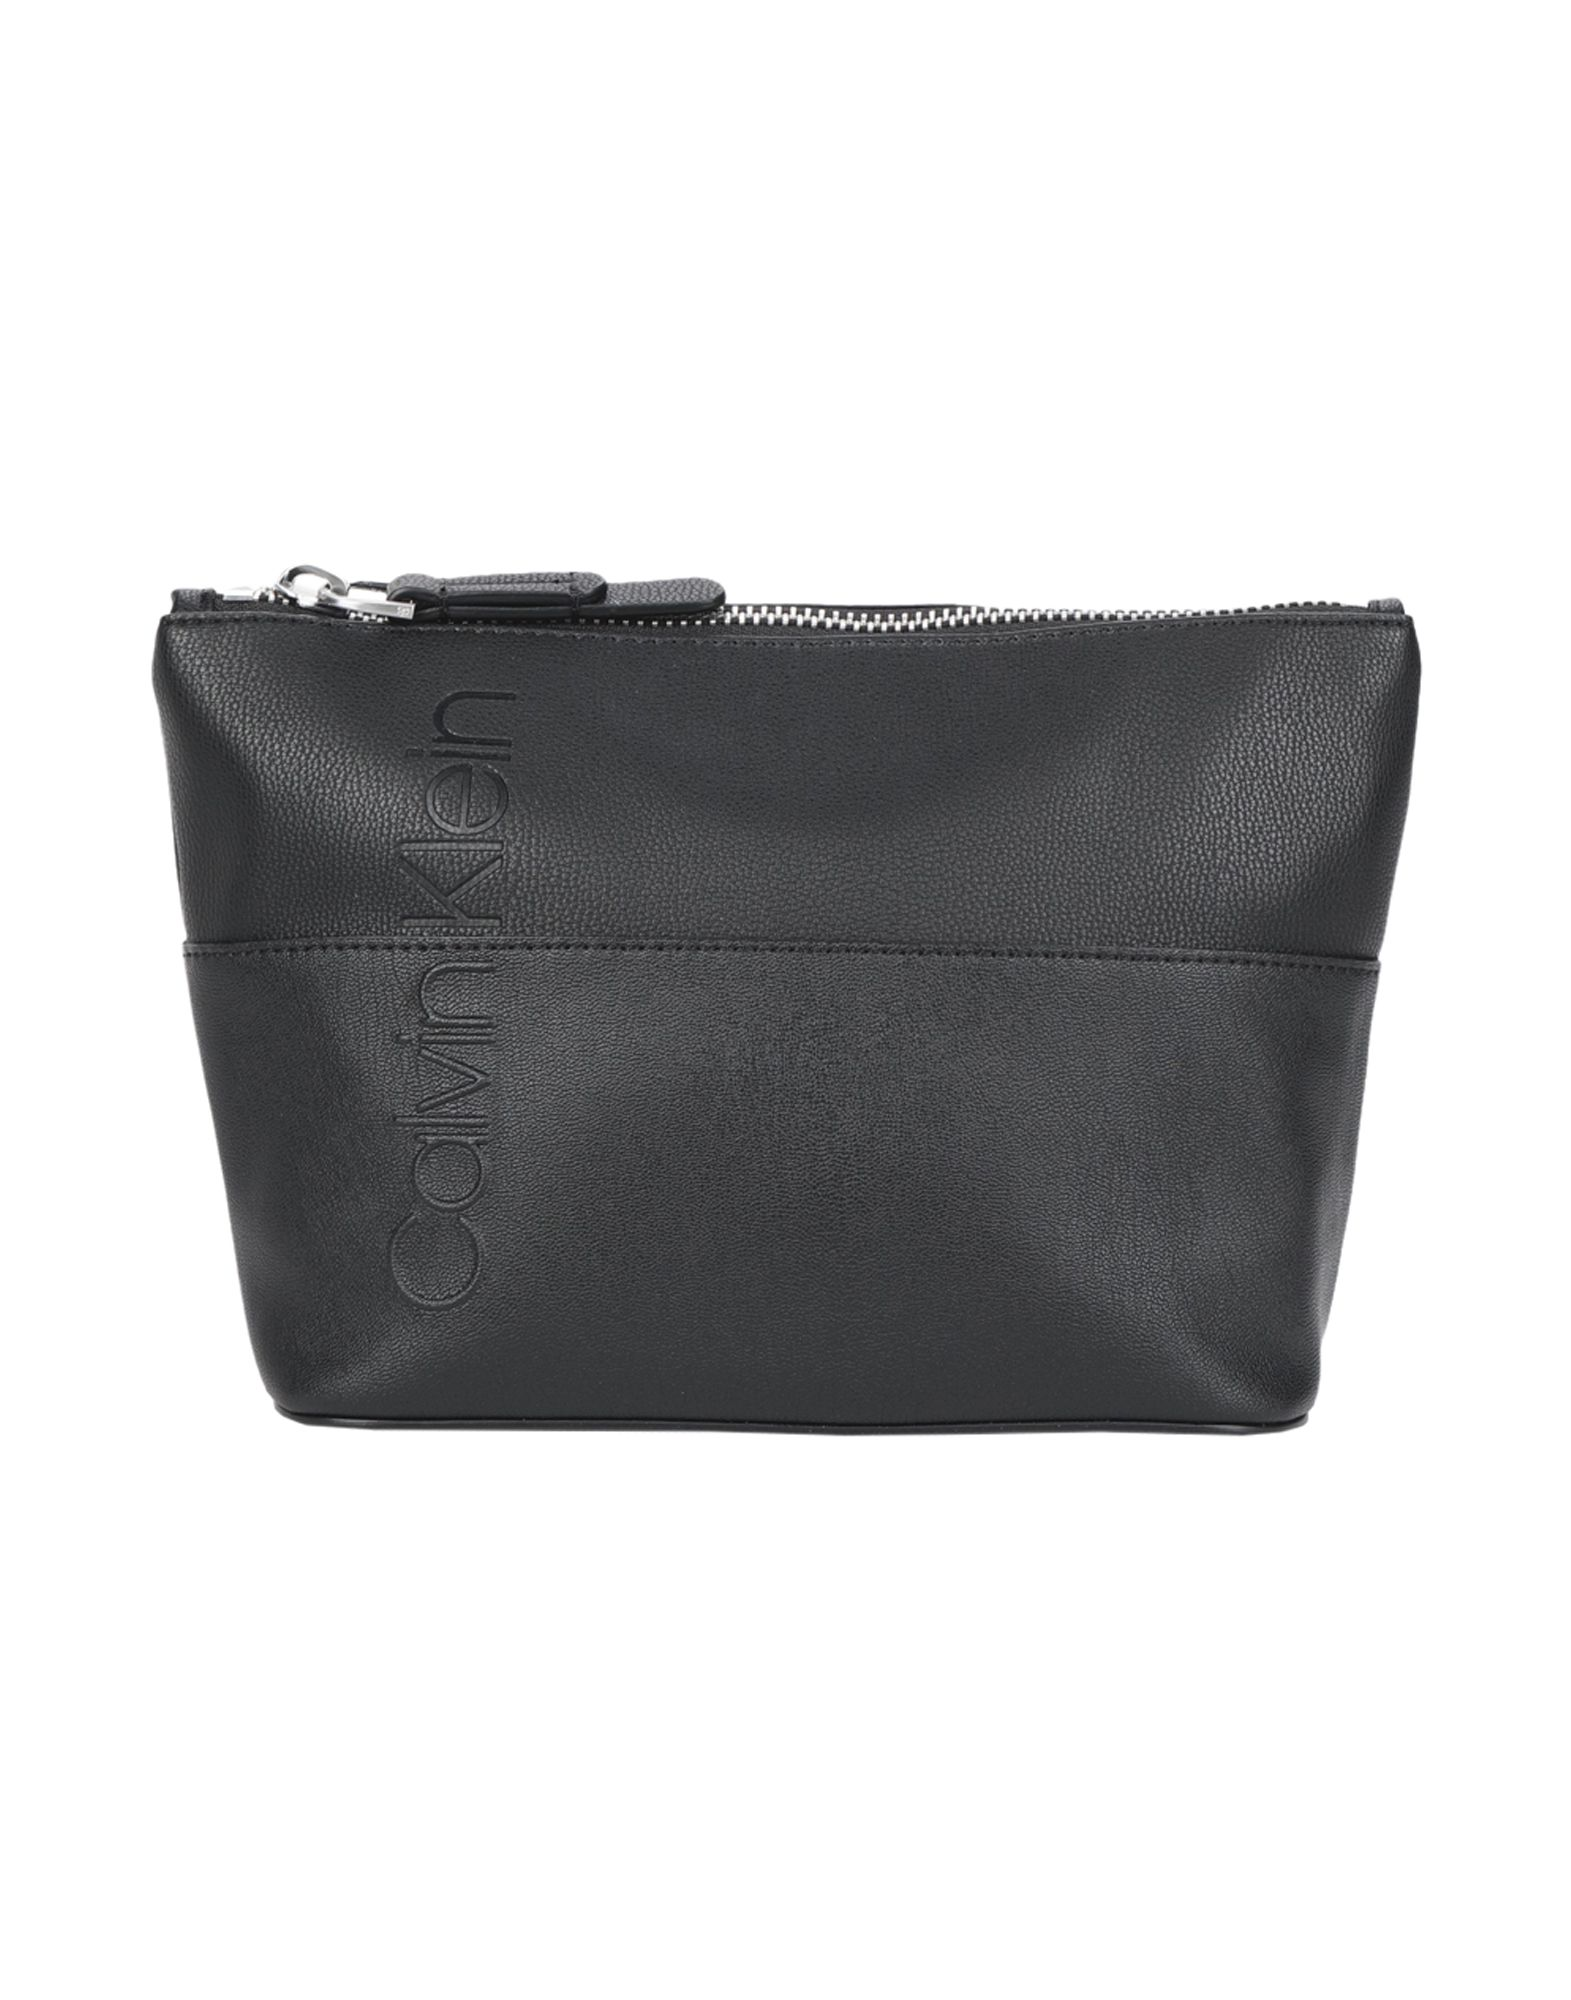 CALVIN KLEIN Beauty case calvin klein beauty sheer